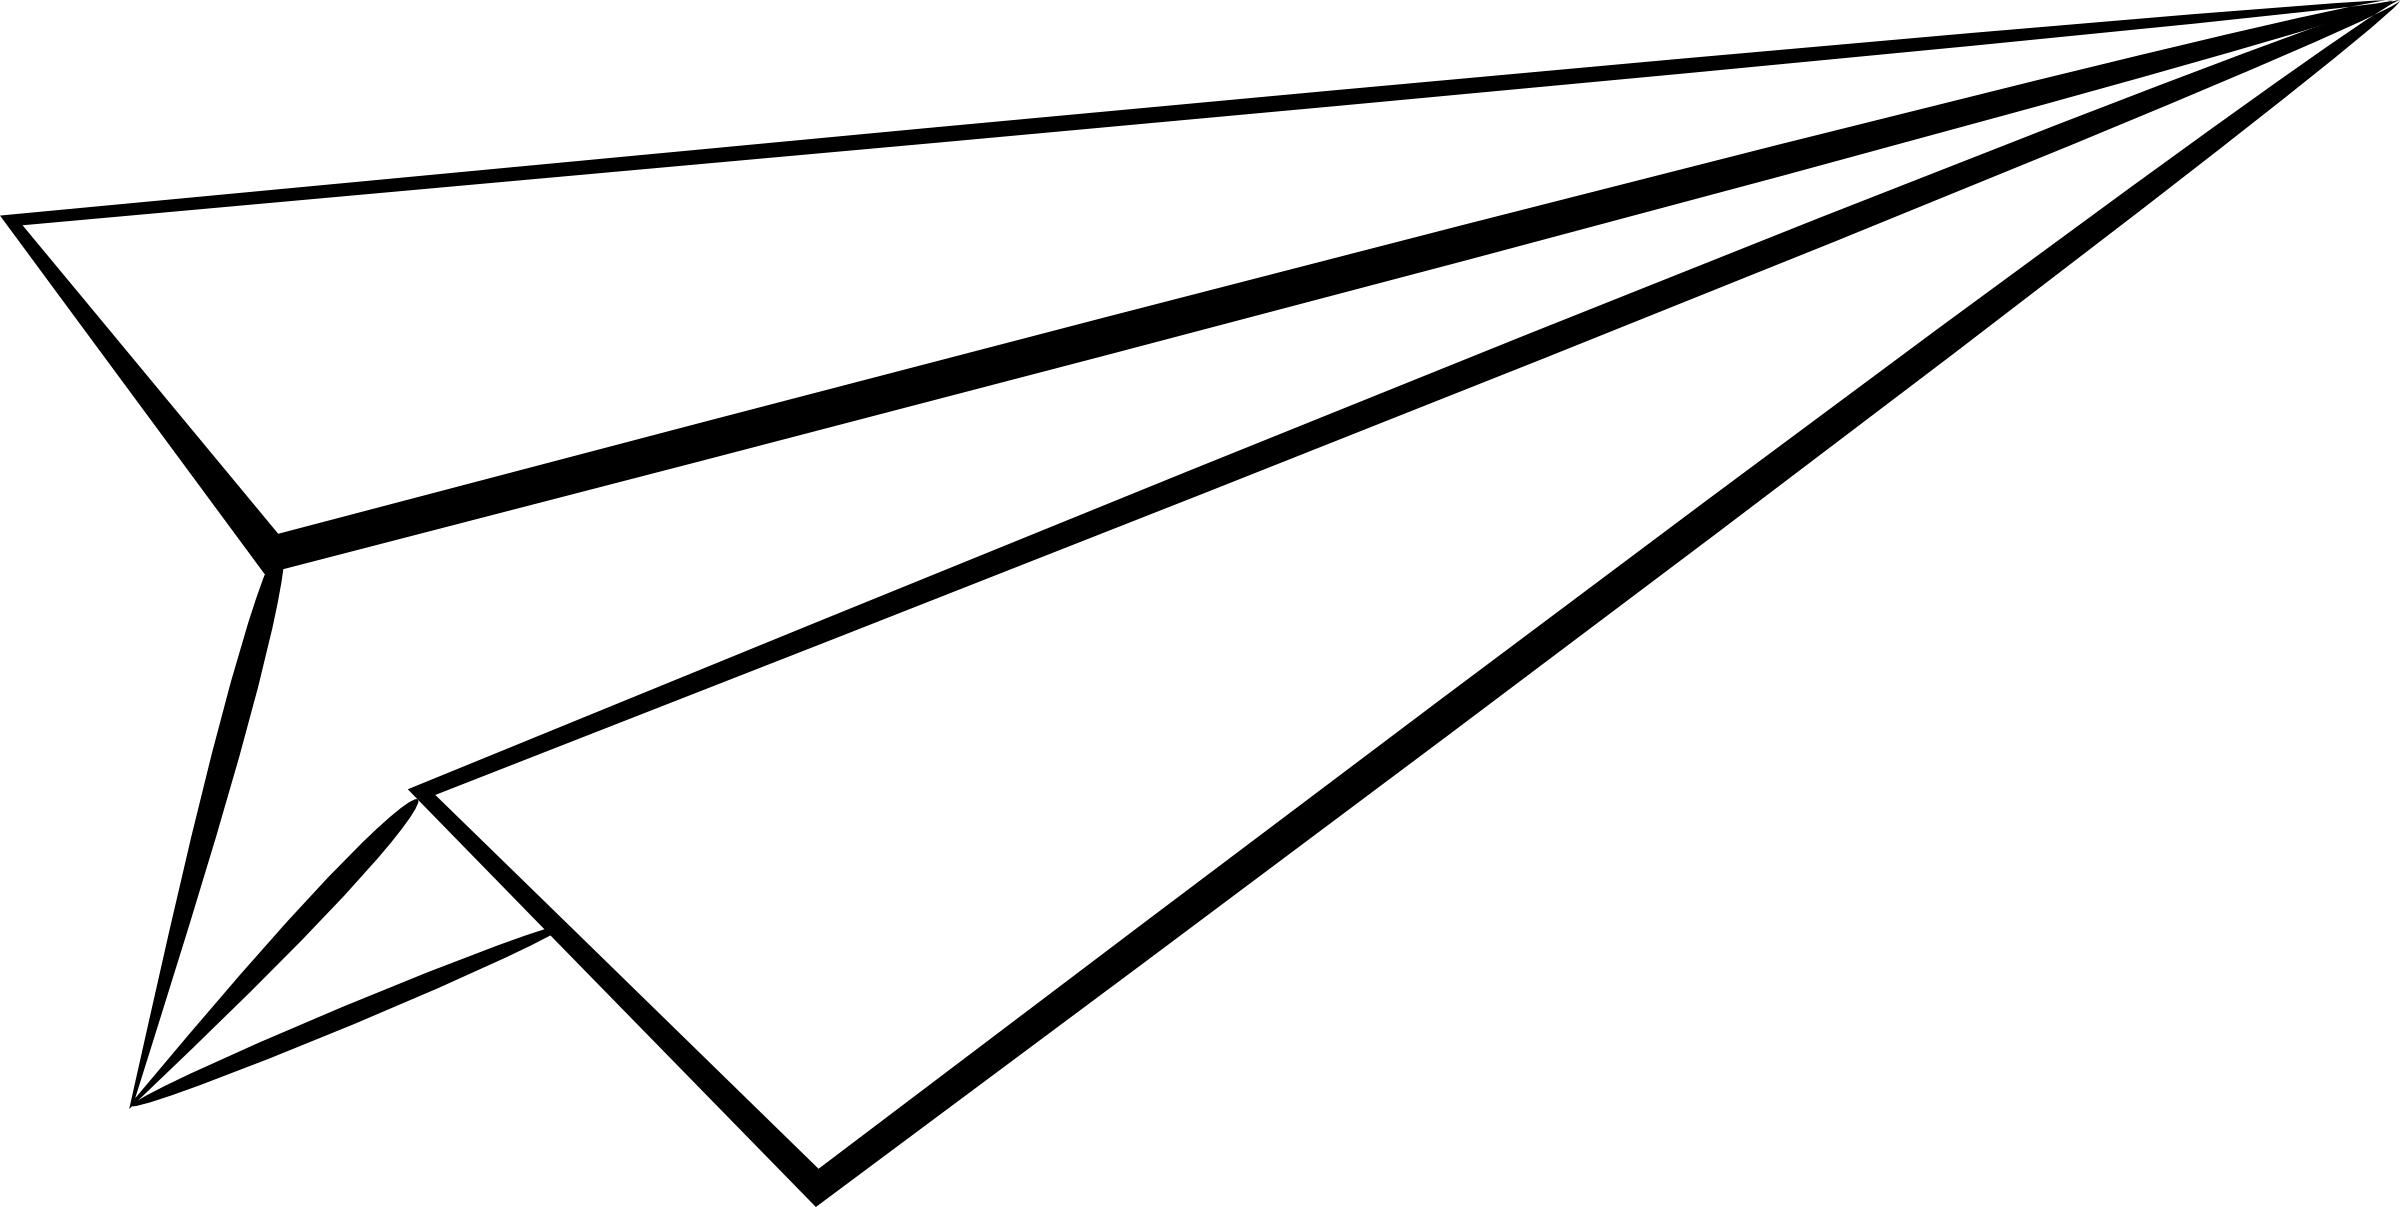 Paper Airplane Drawing Free